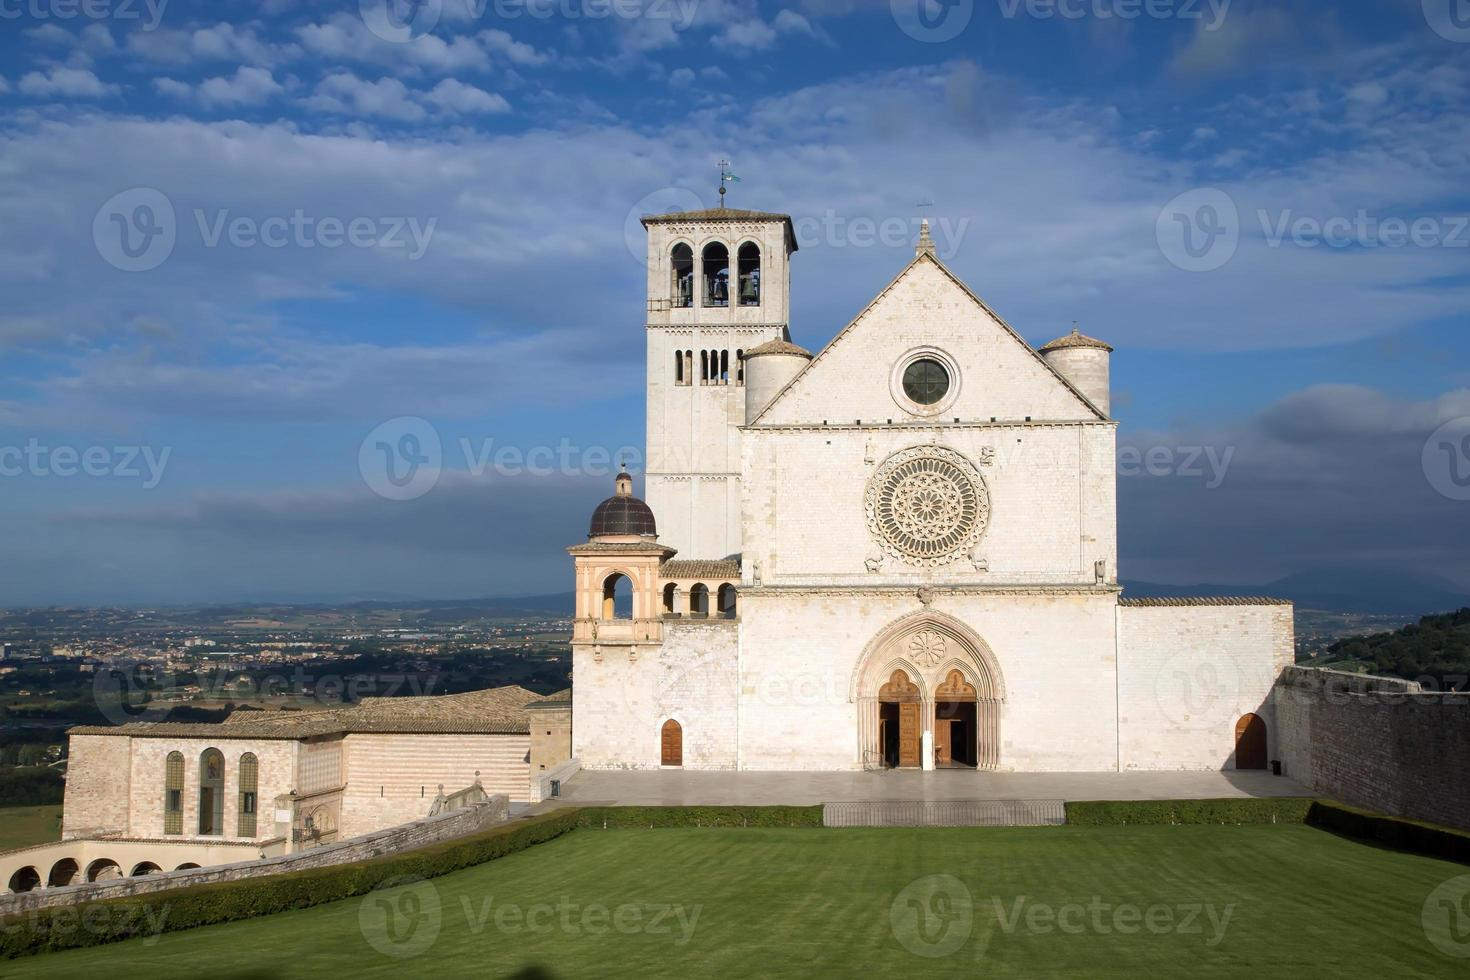 The Papal Basilica of St. Francis of Assisi photo